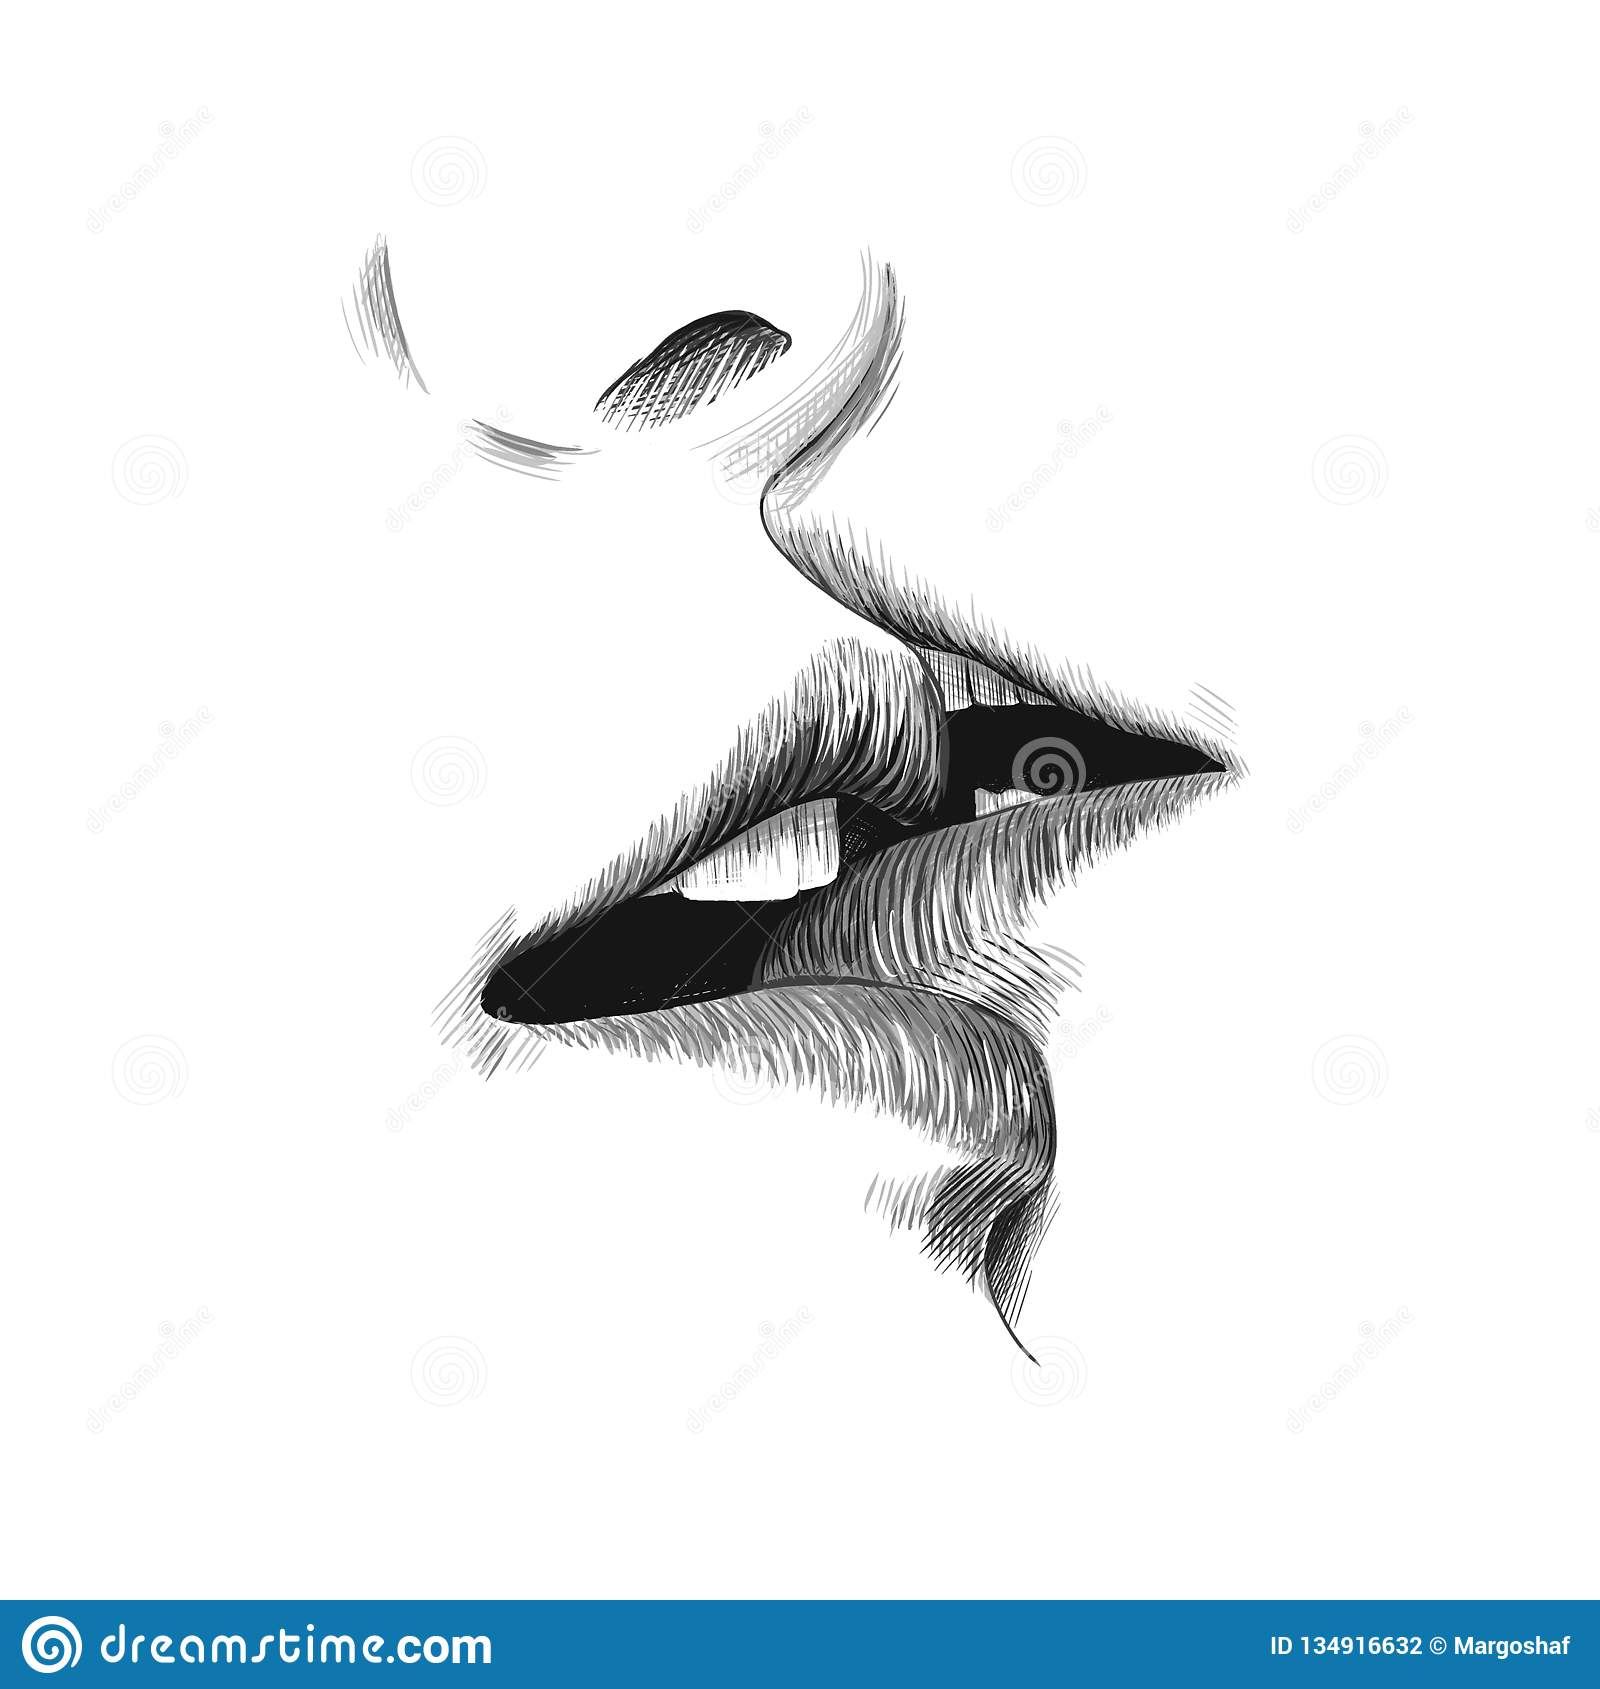 Kiss sketch vector illustration hand drawn black and white